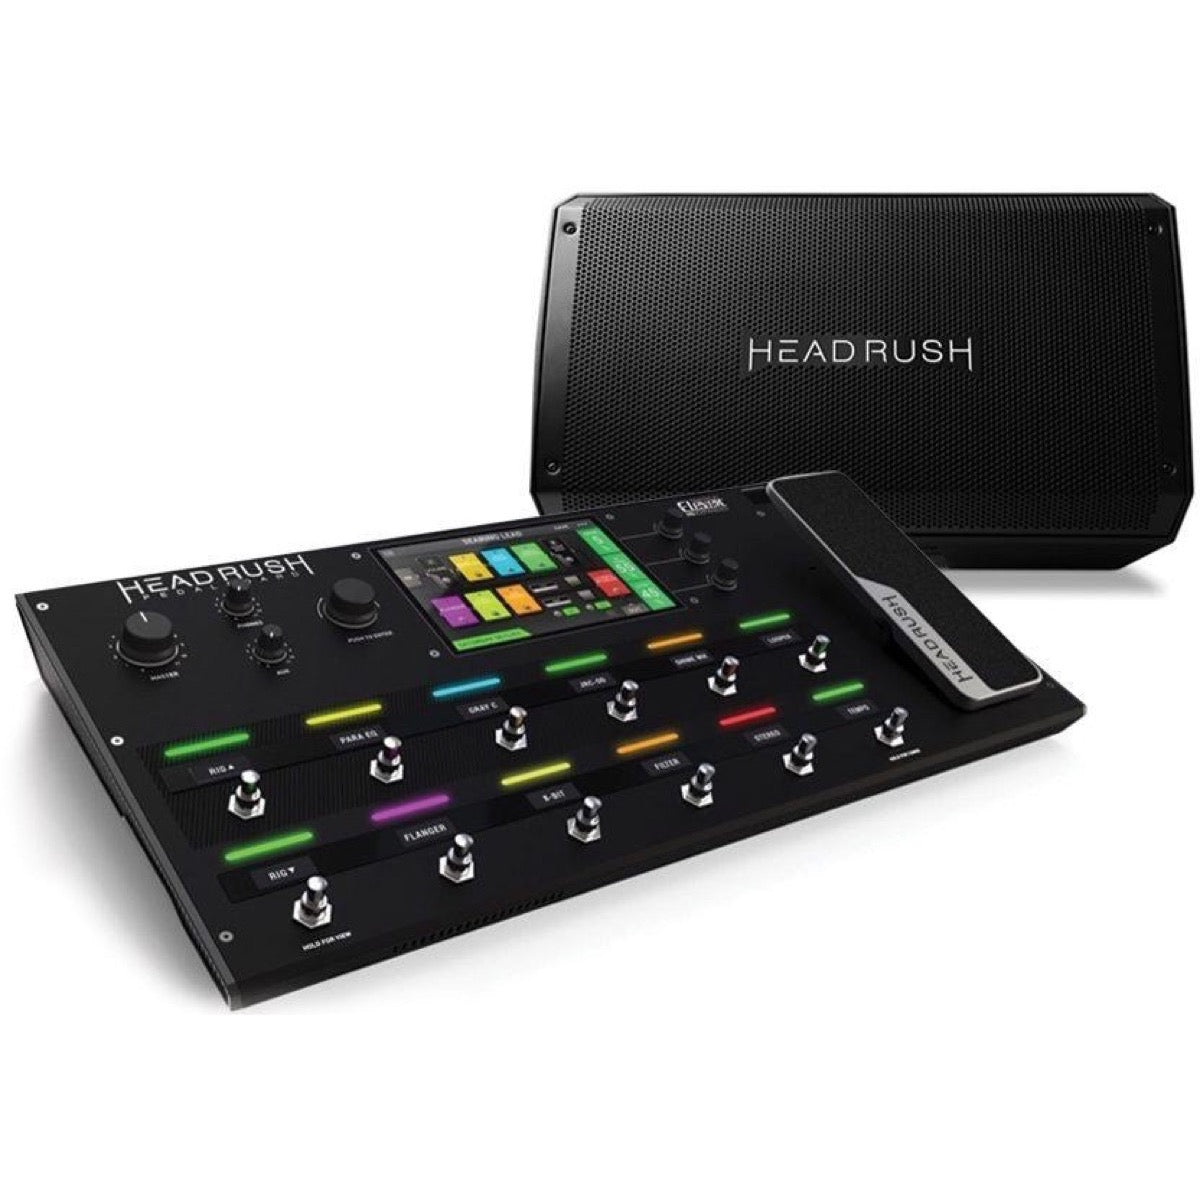 HeadRush Pedalboard Guitar Multi-effects Processor, with HeadRush FRFR-112 Powered Cabinet